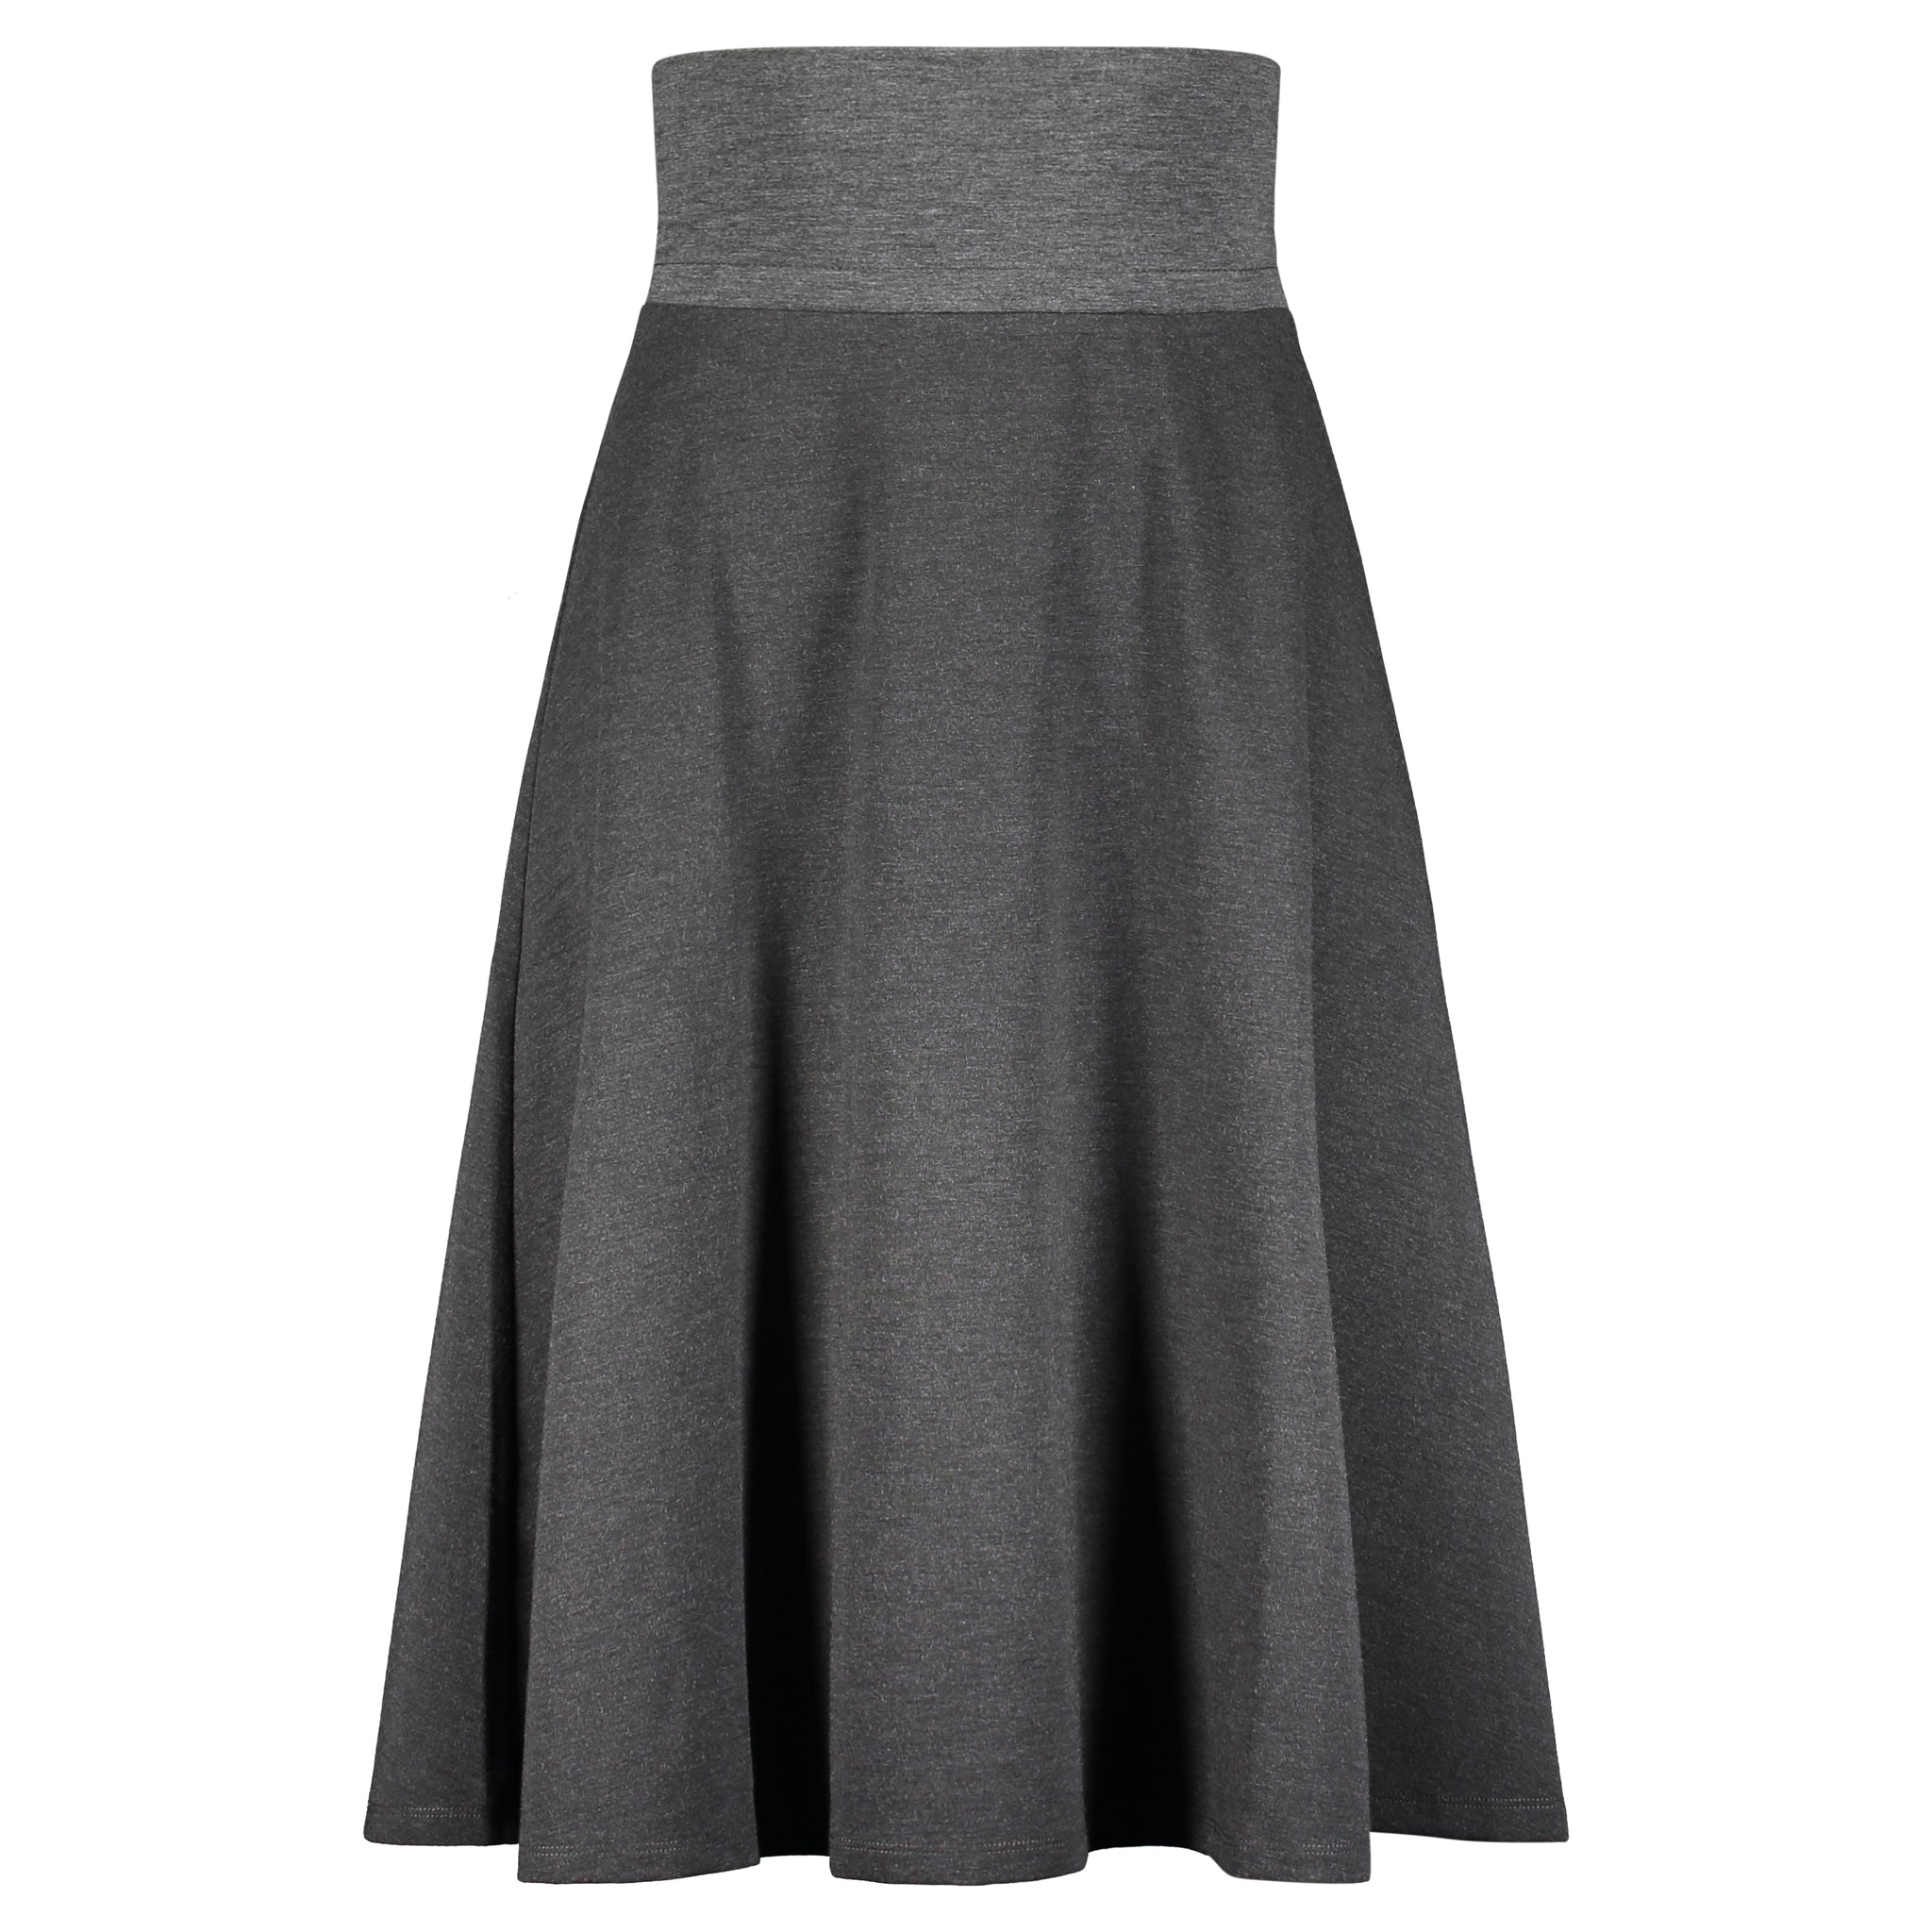 Grey Betty Skirt